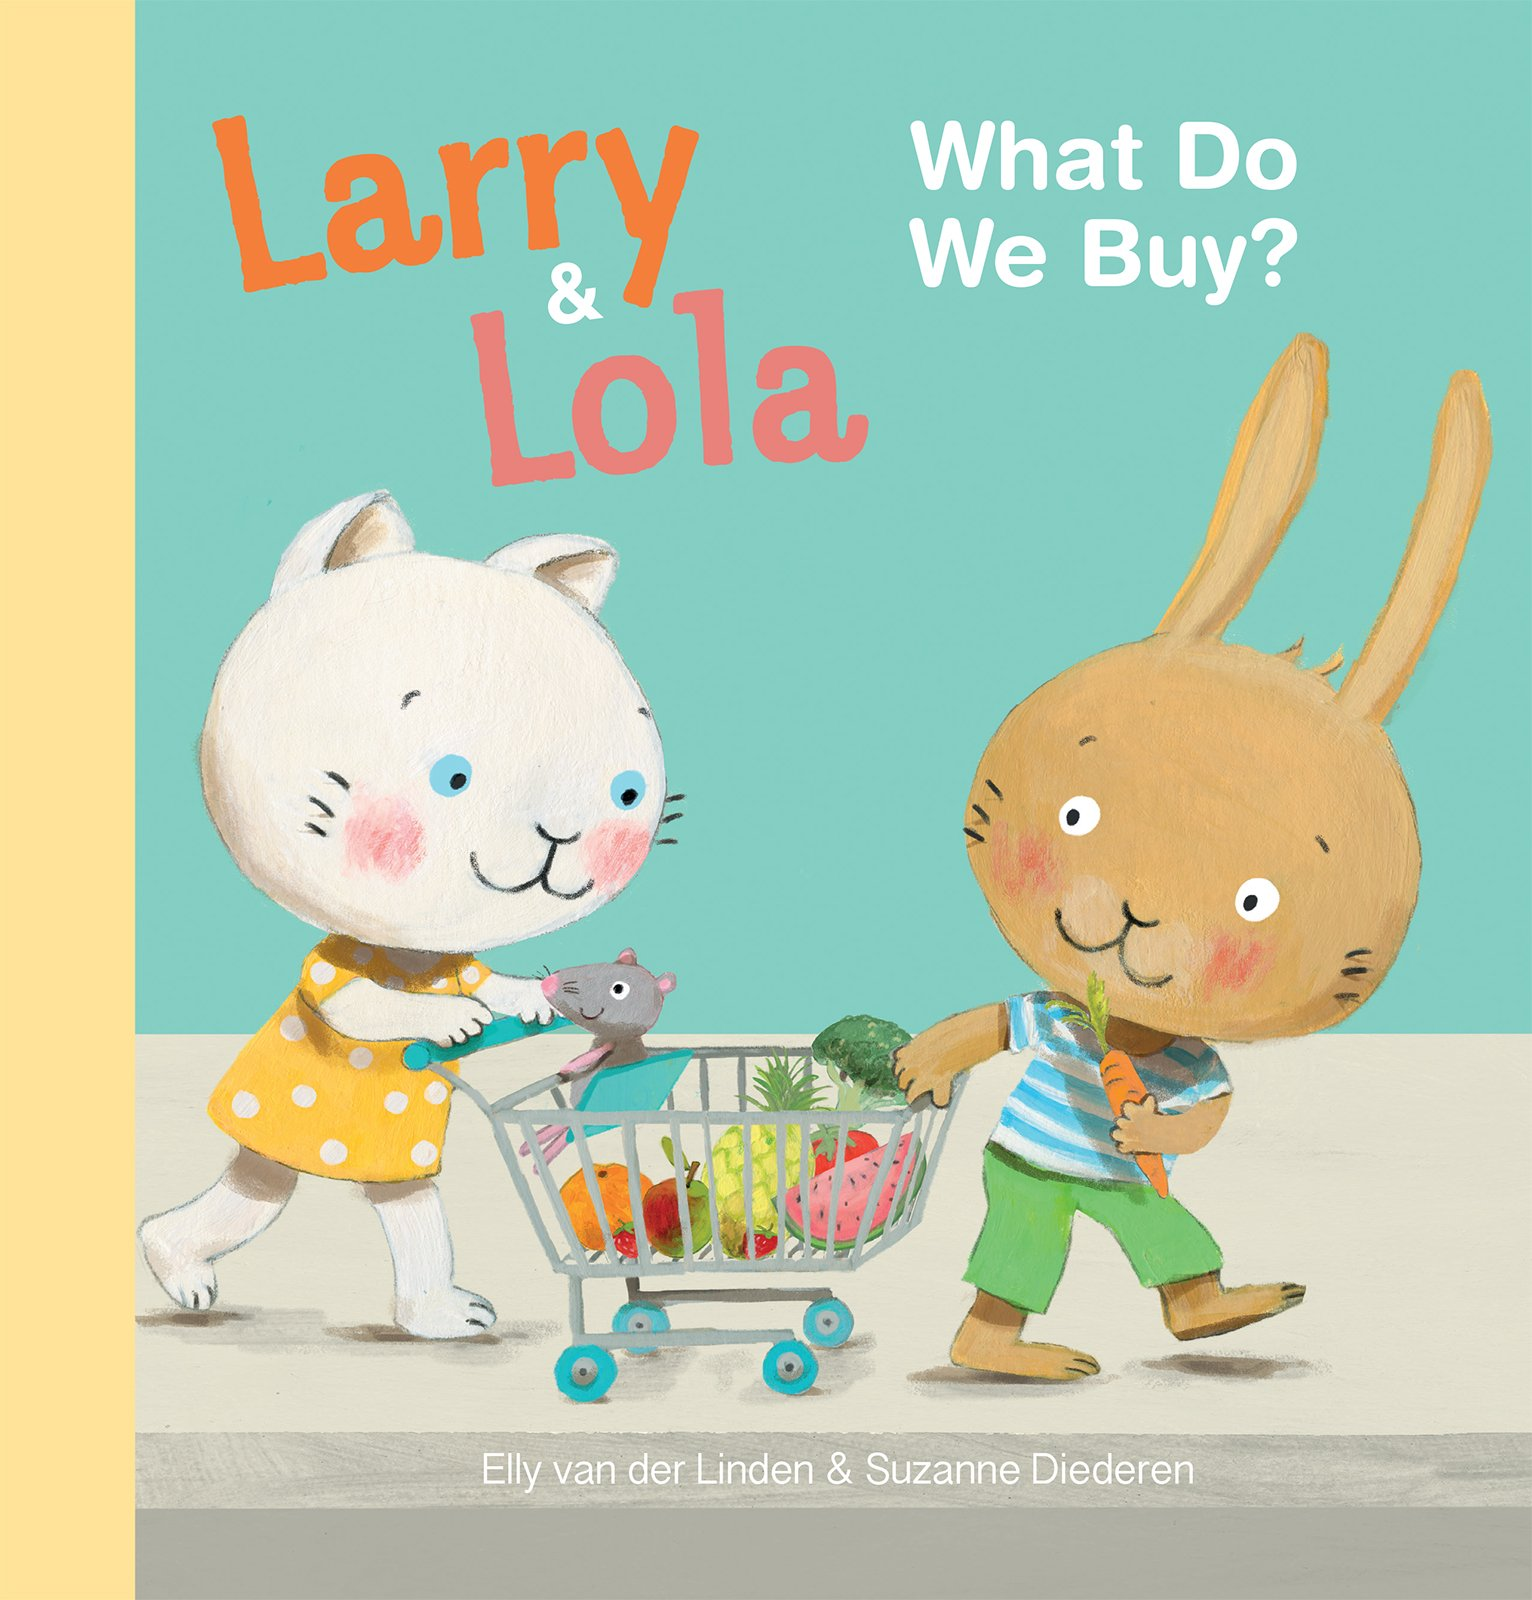 Larry and Lola. What Do We Buy? by Clavis